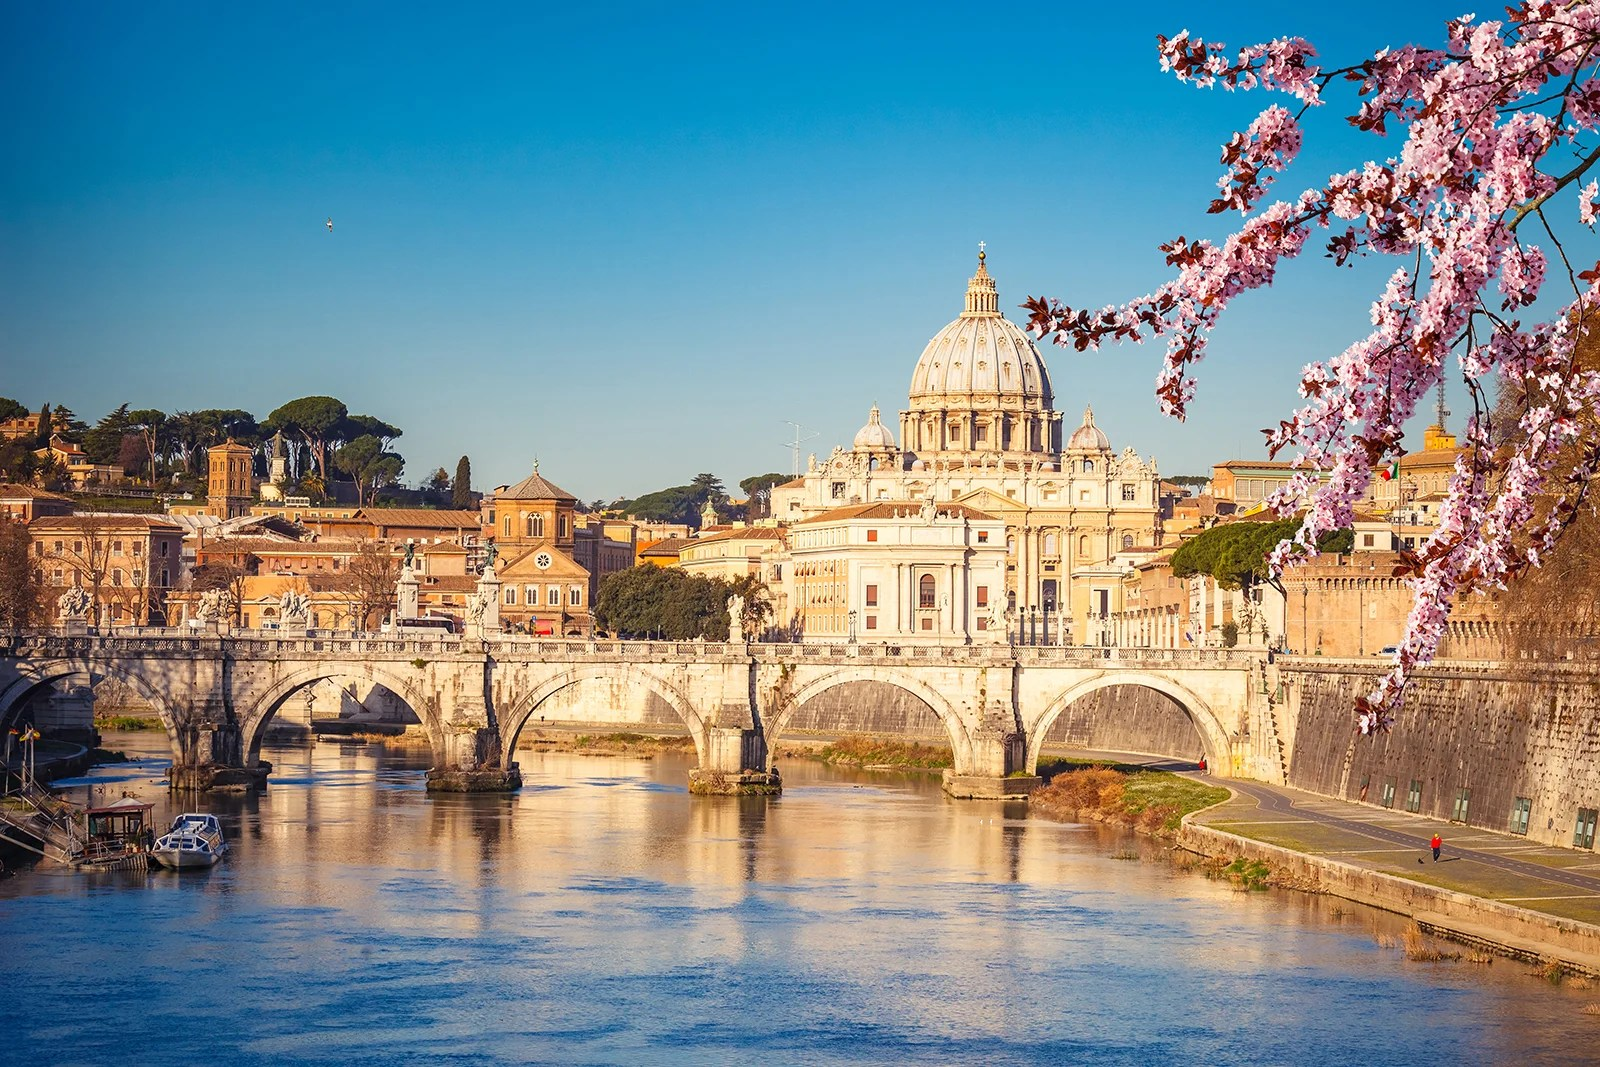 Round trip to Rome, Milan, Athens from $306 or 38,500 miles on United, Emirates and more